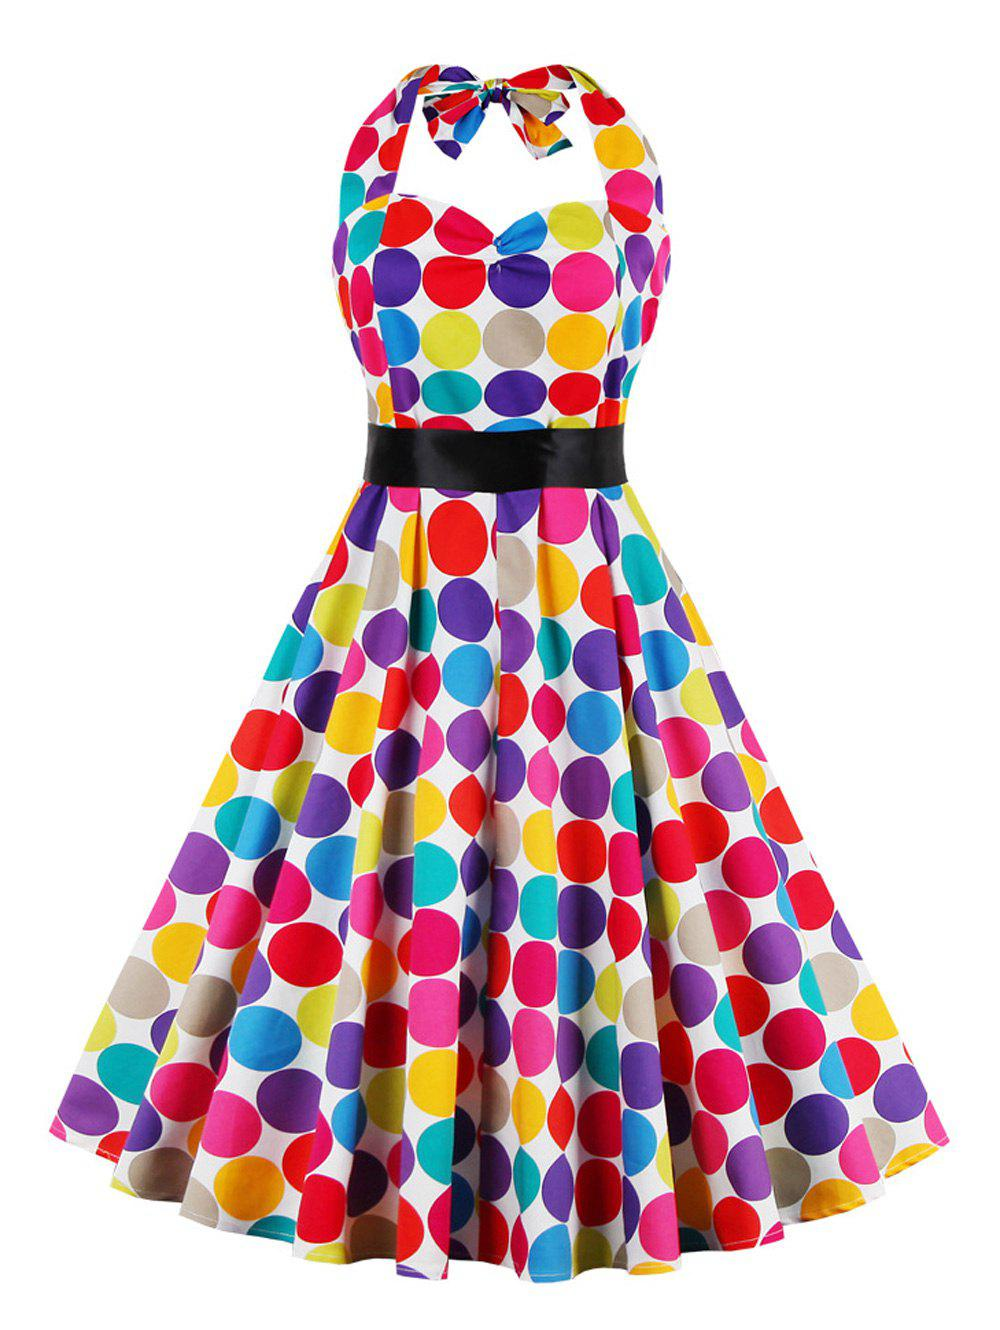 Retro Halter Sweetheart Neck Colorful Polk Dot Dress - COLORMIX L